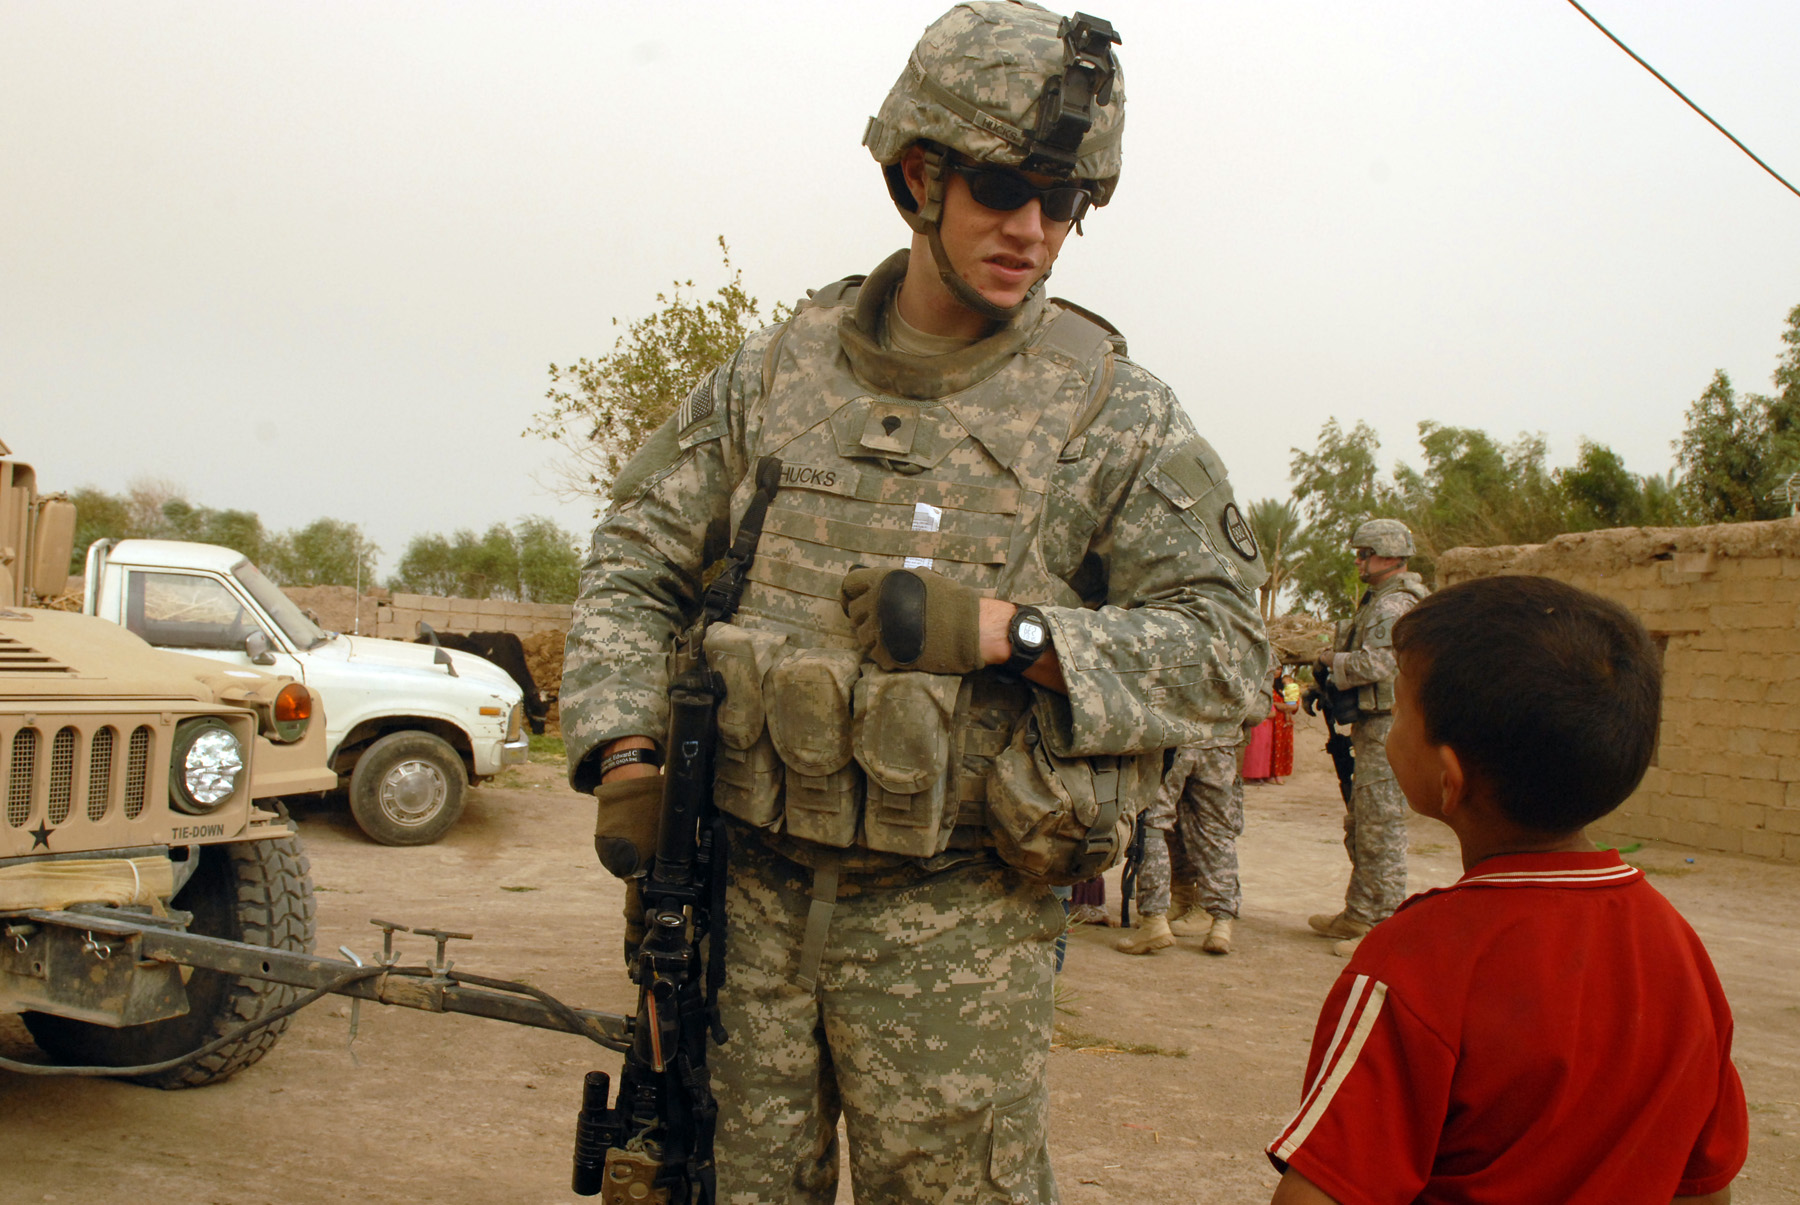 An American soldier talks to a child in Iraq. By the North Carolina National Guard.